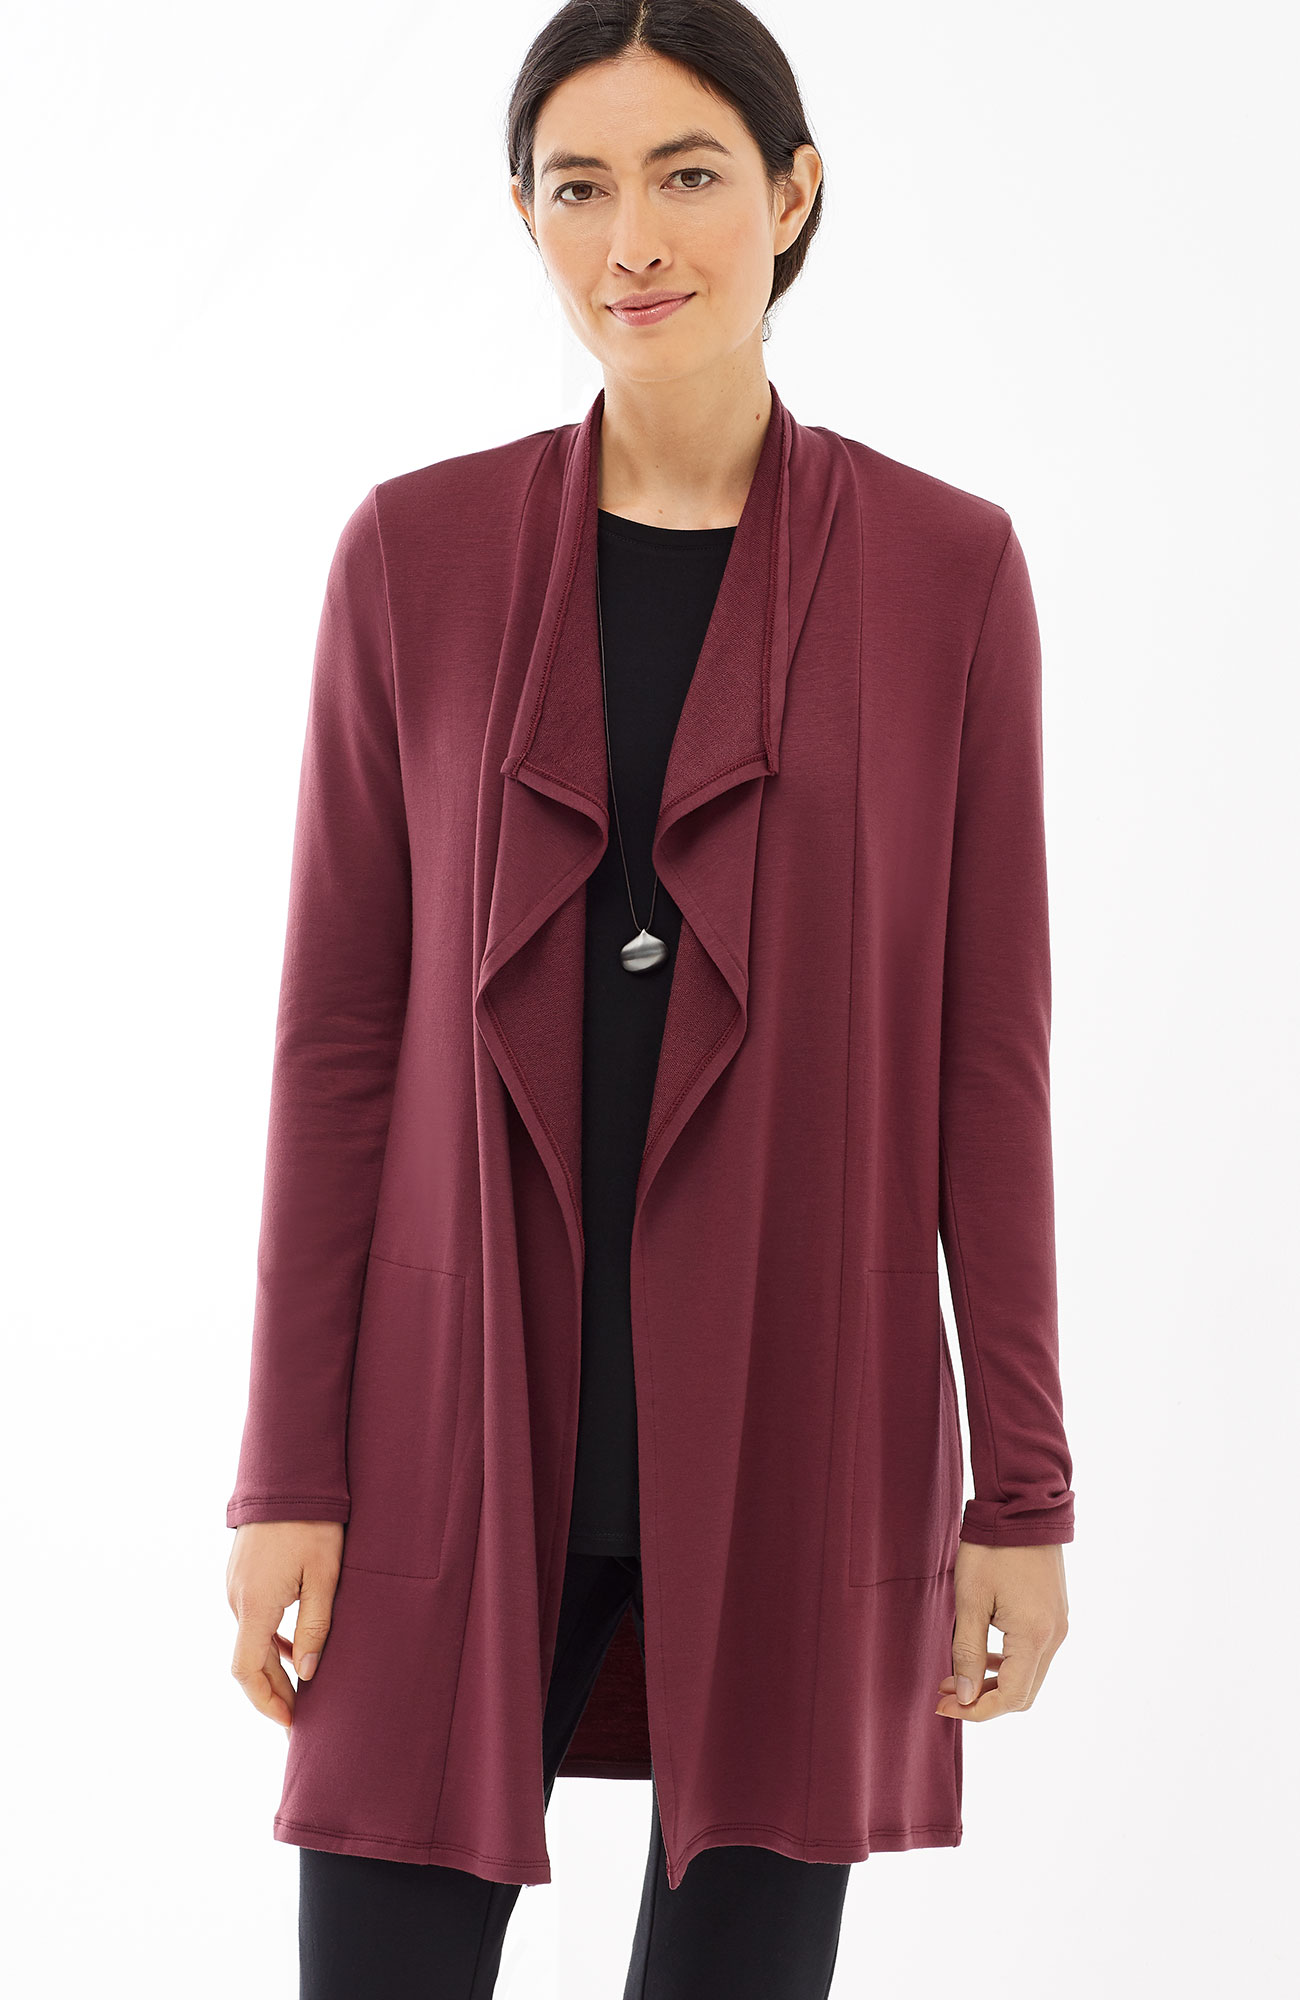 Pure Jill Luxe Tencel® draped-front jacket